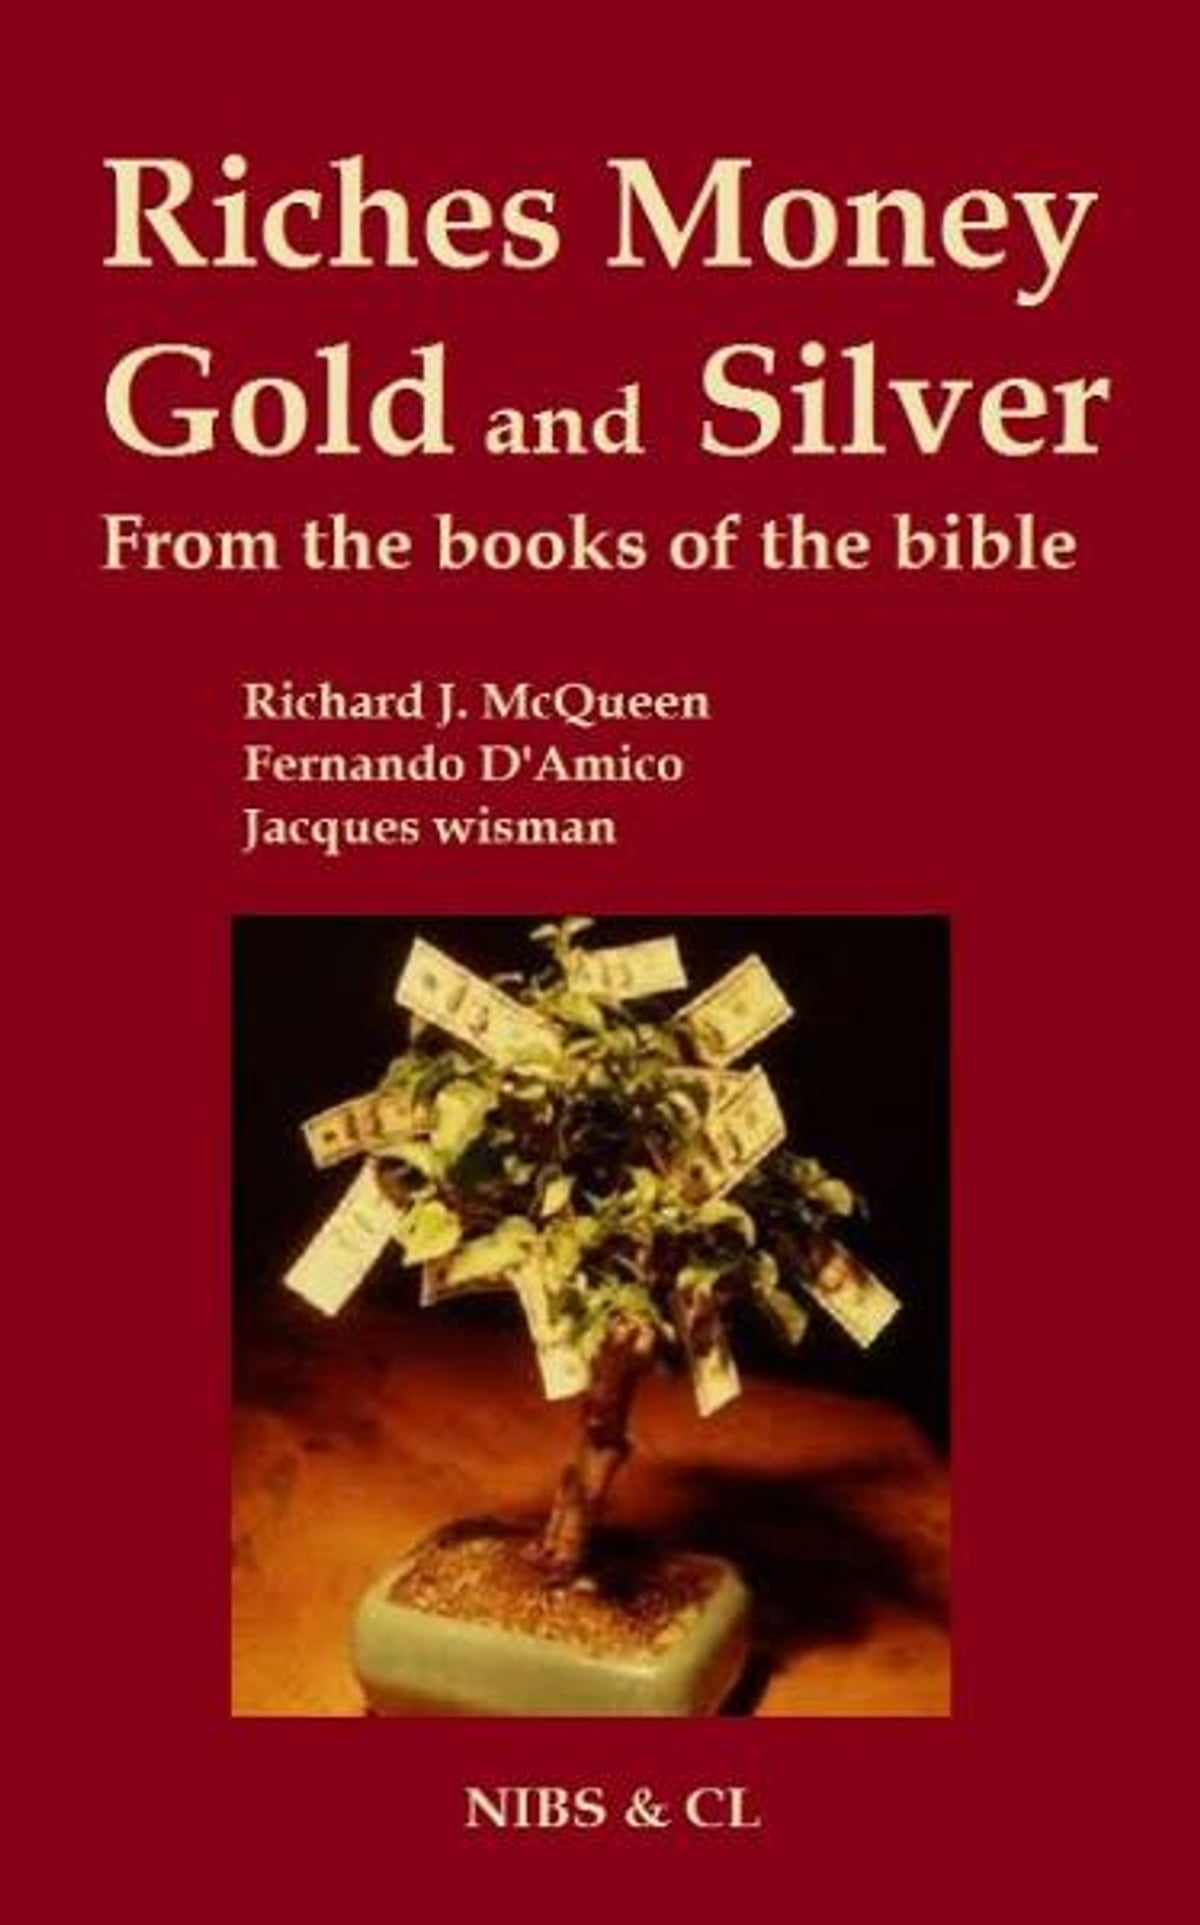 Riches, Money, Gold and Silver (From the books of the Bible)